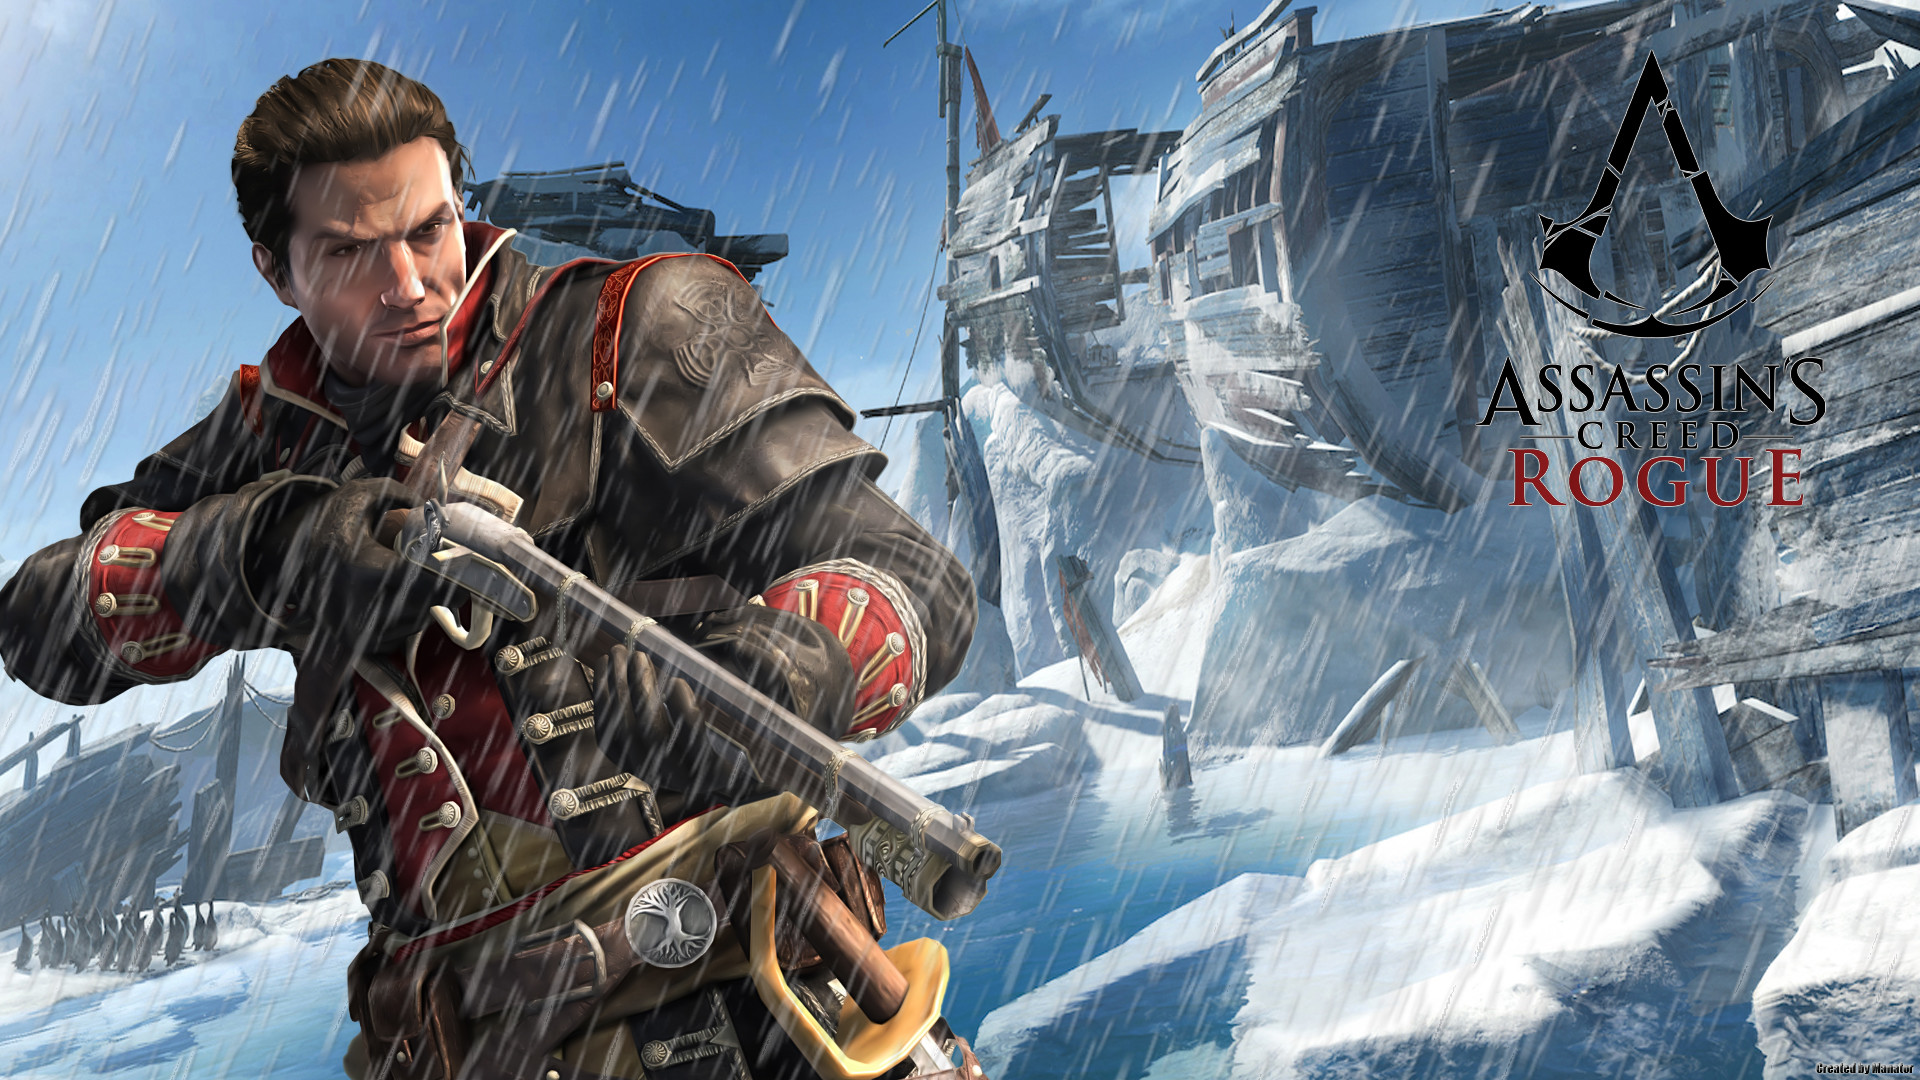 1920x1080 Assassins Creed Rogue wallpapers or desktop backgrounds